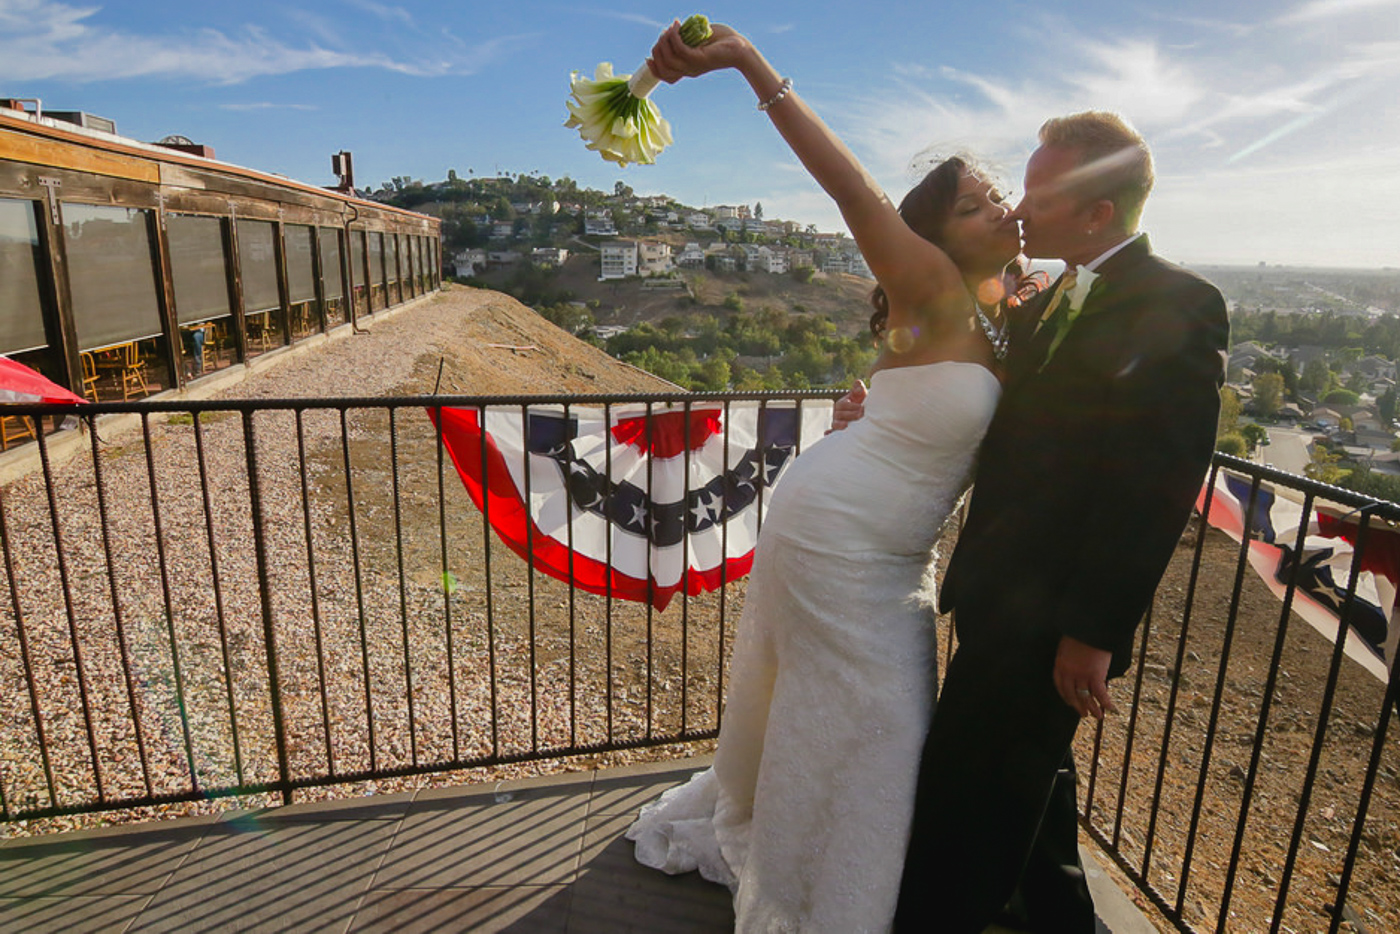 Bride and groom after wedding ceremony at the orange county mining co.